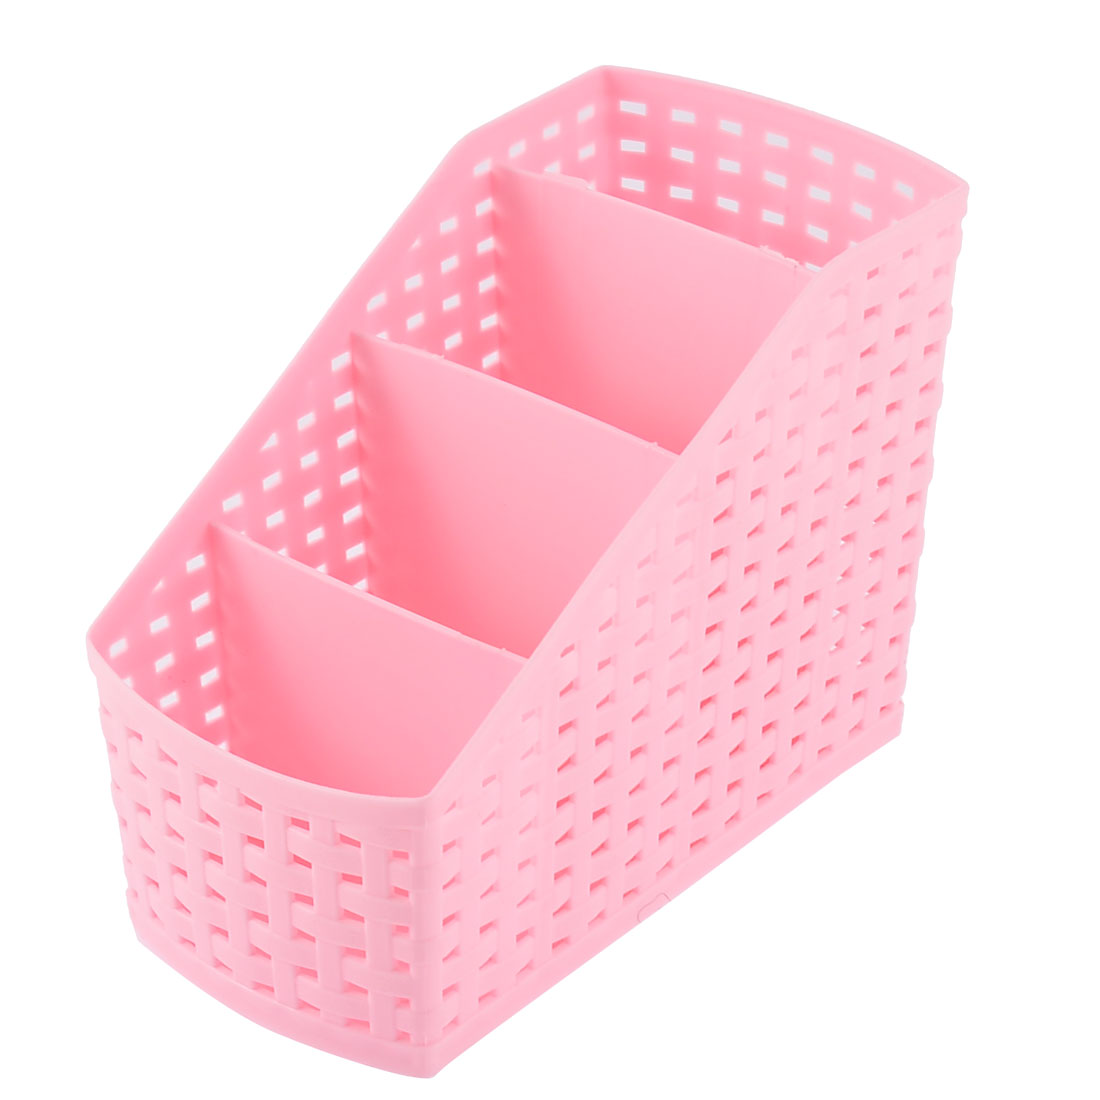 Kitchen Home Makeup Desktop Plastic 4 Slots Storage Organizer Divider Box Pink